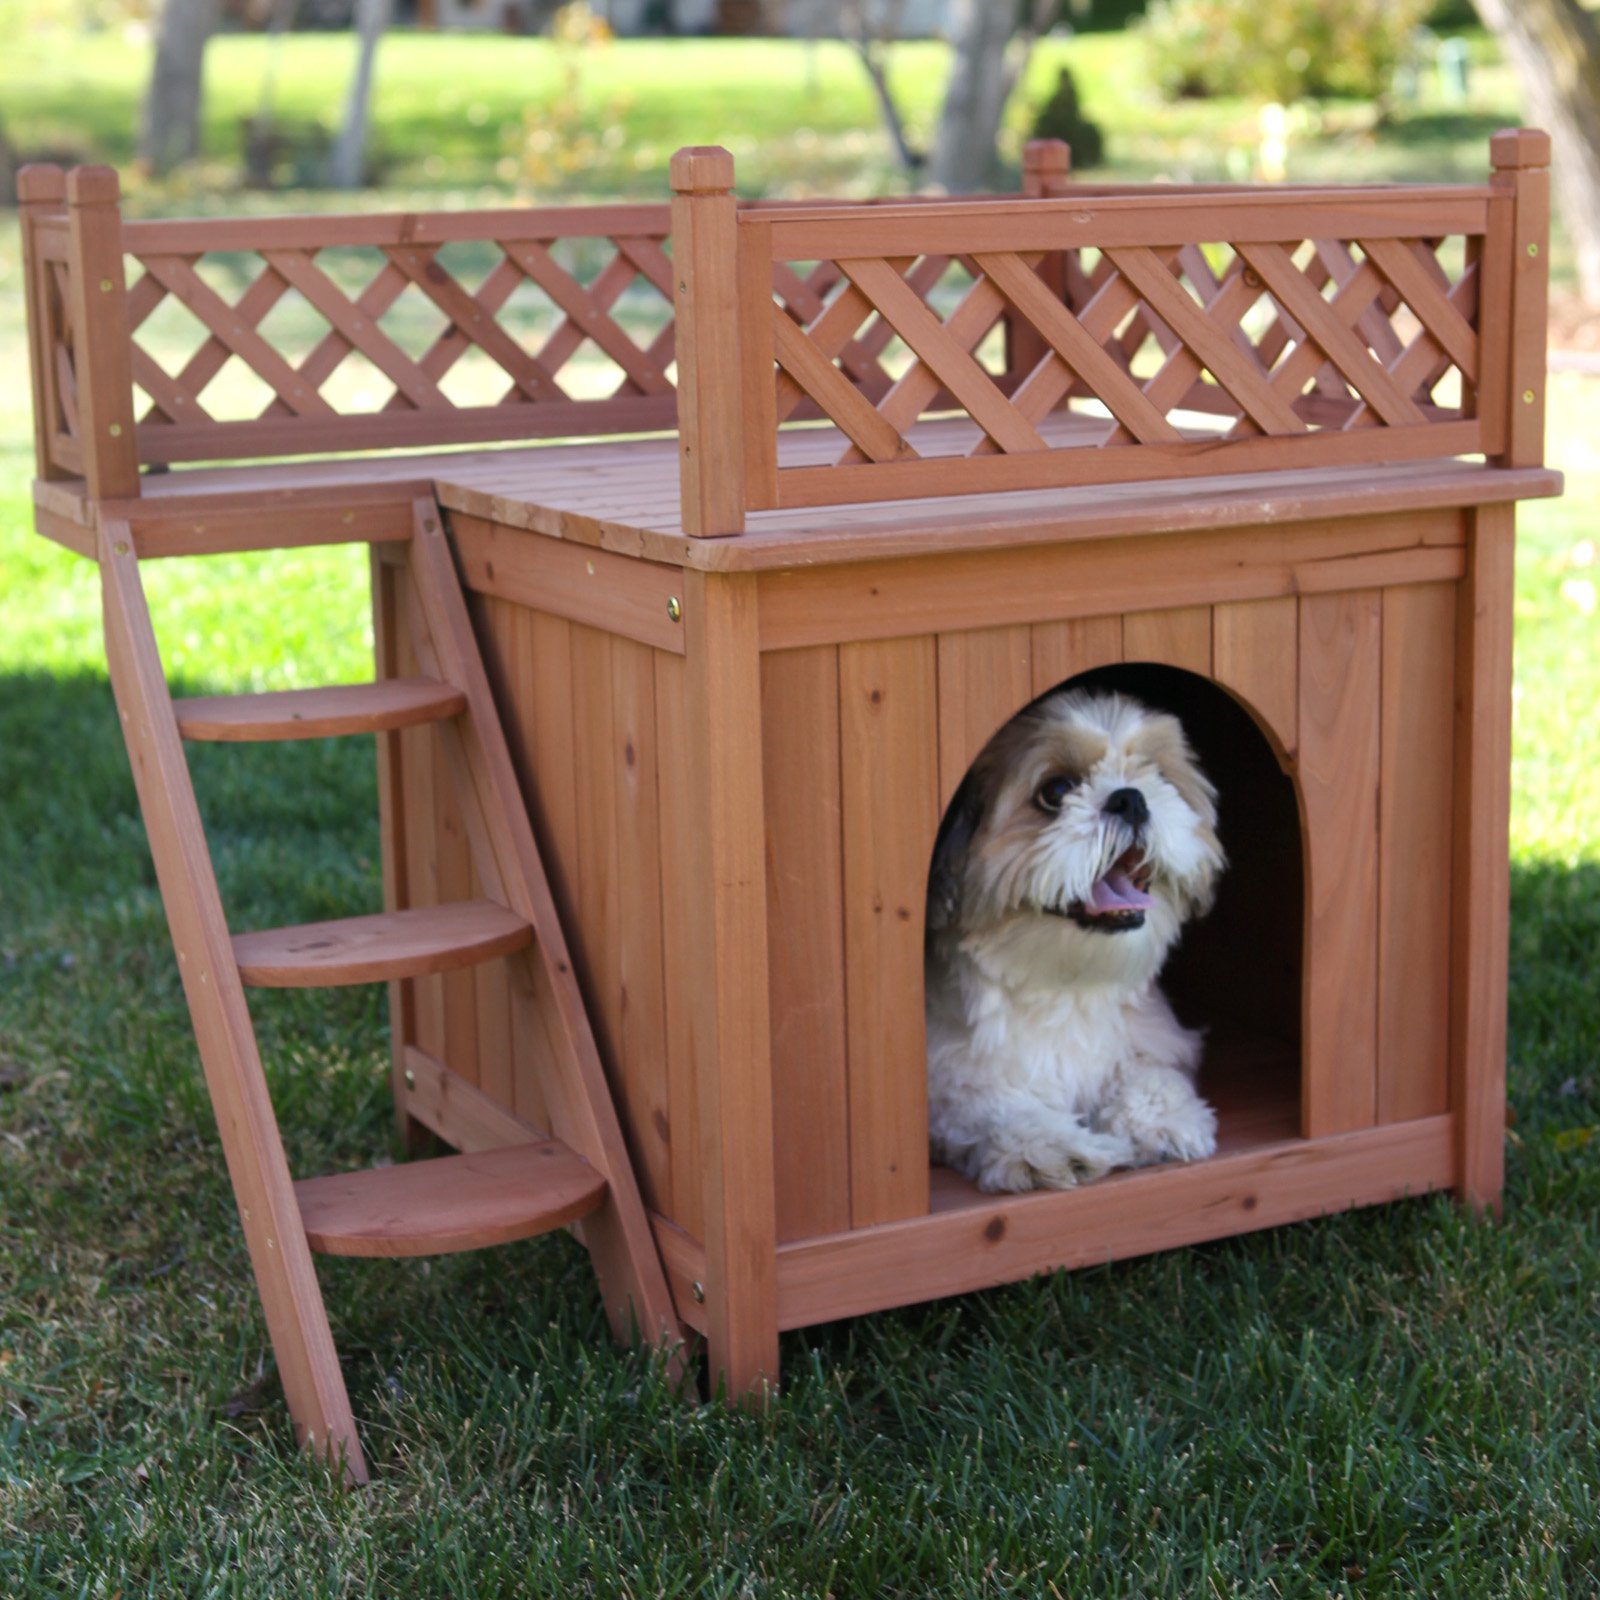 Room With A View Garden Design Part - 47: Room With A View Dog House - Walmart.com